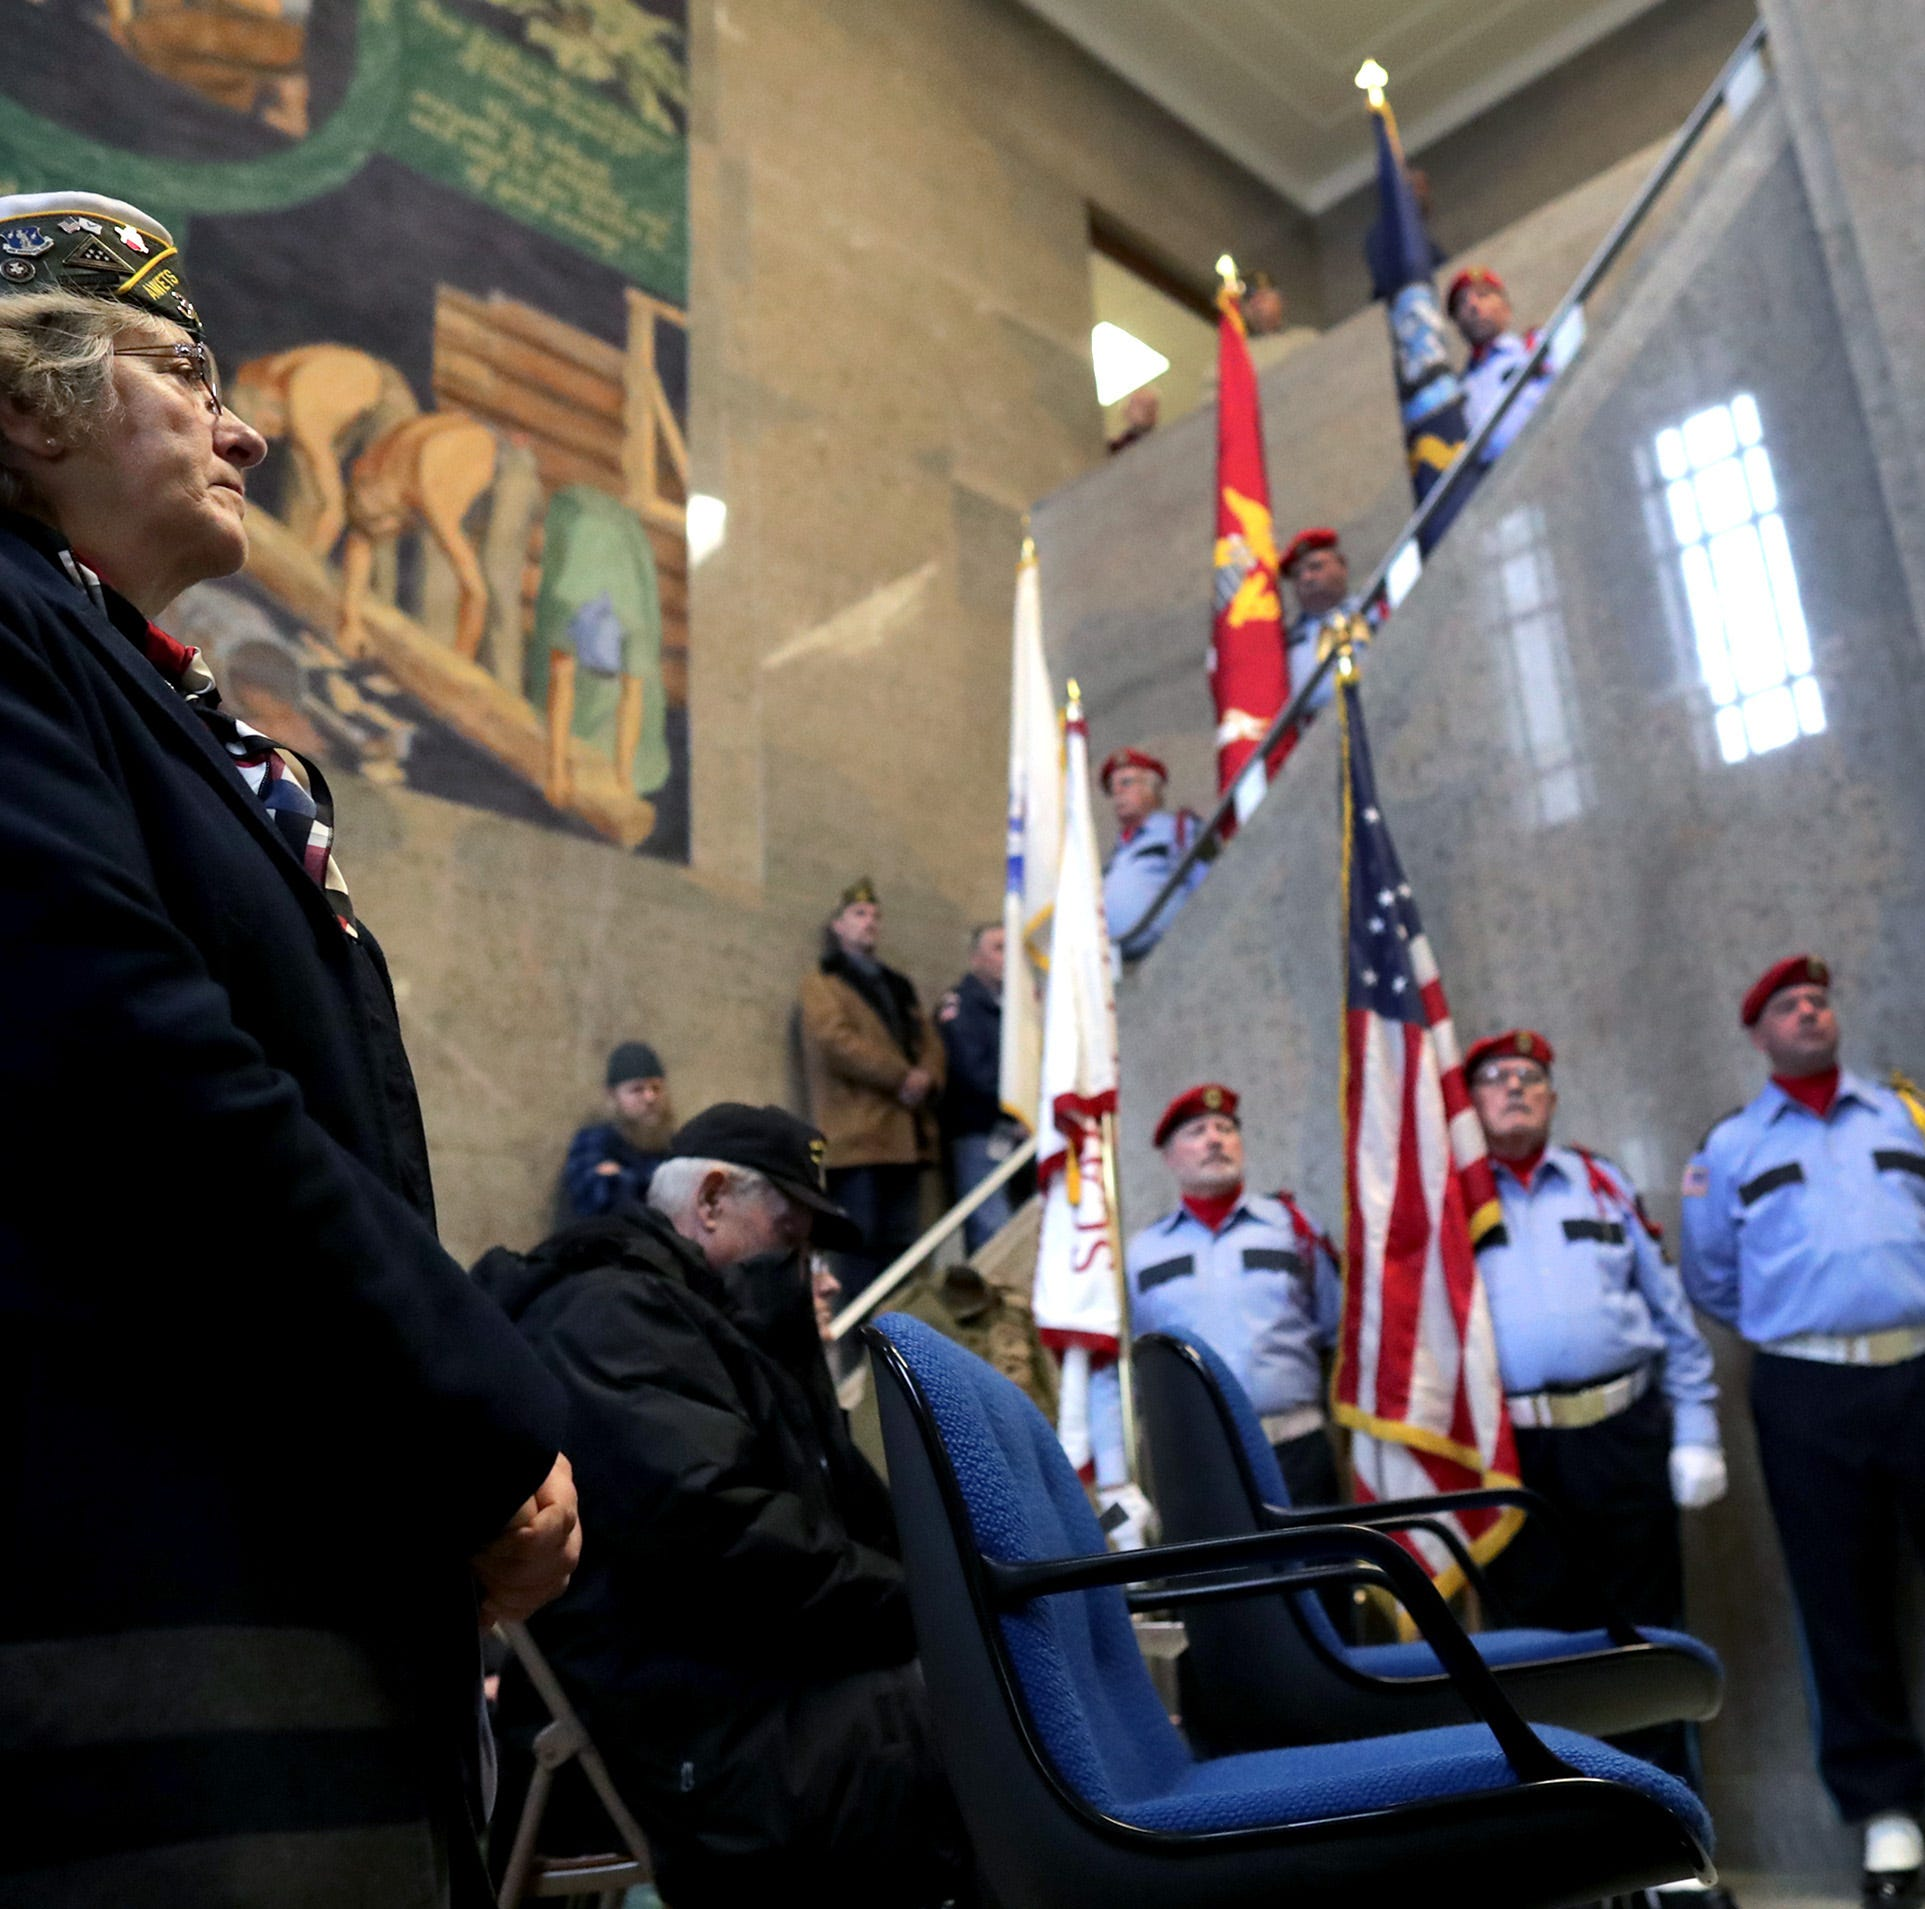 Solemn Veterans Day ceremony in Appleton marks 100 years since end of World War I